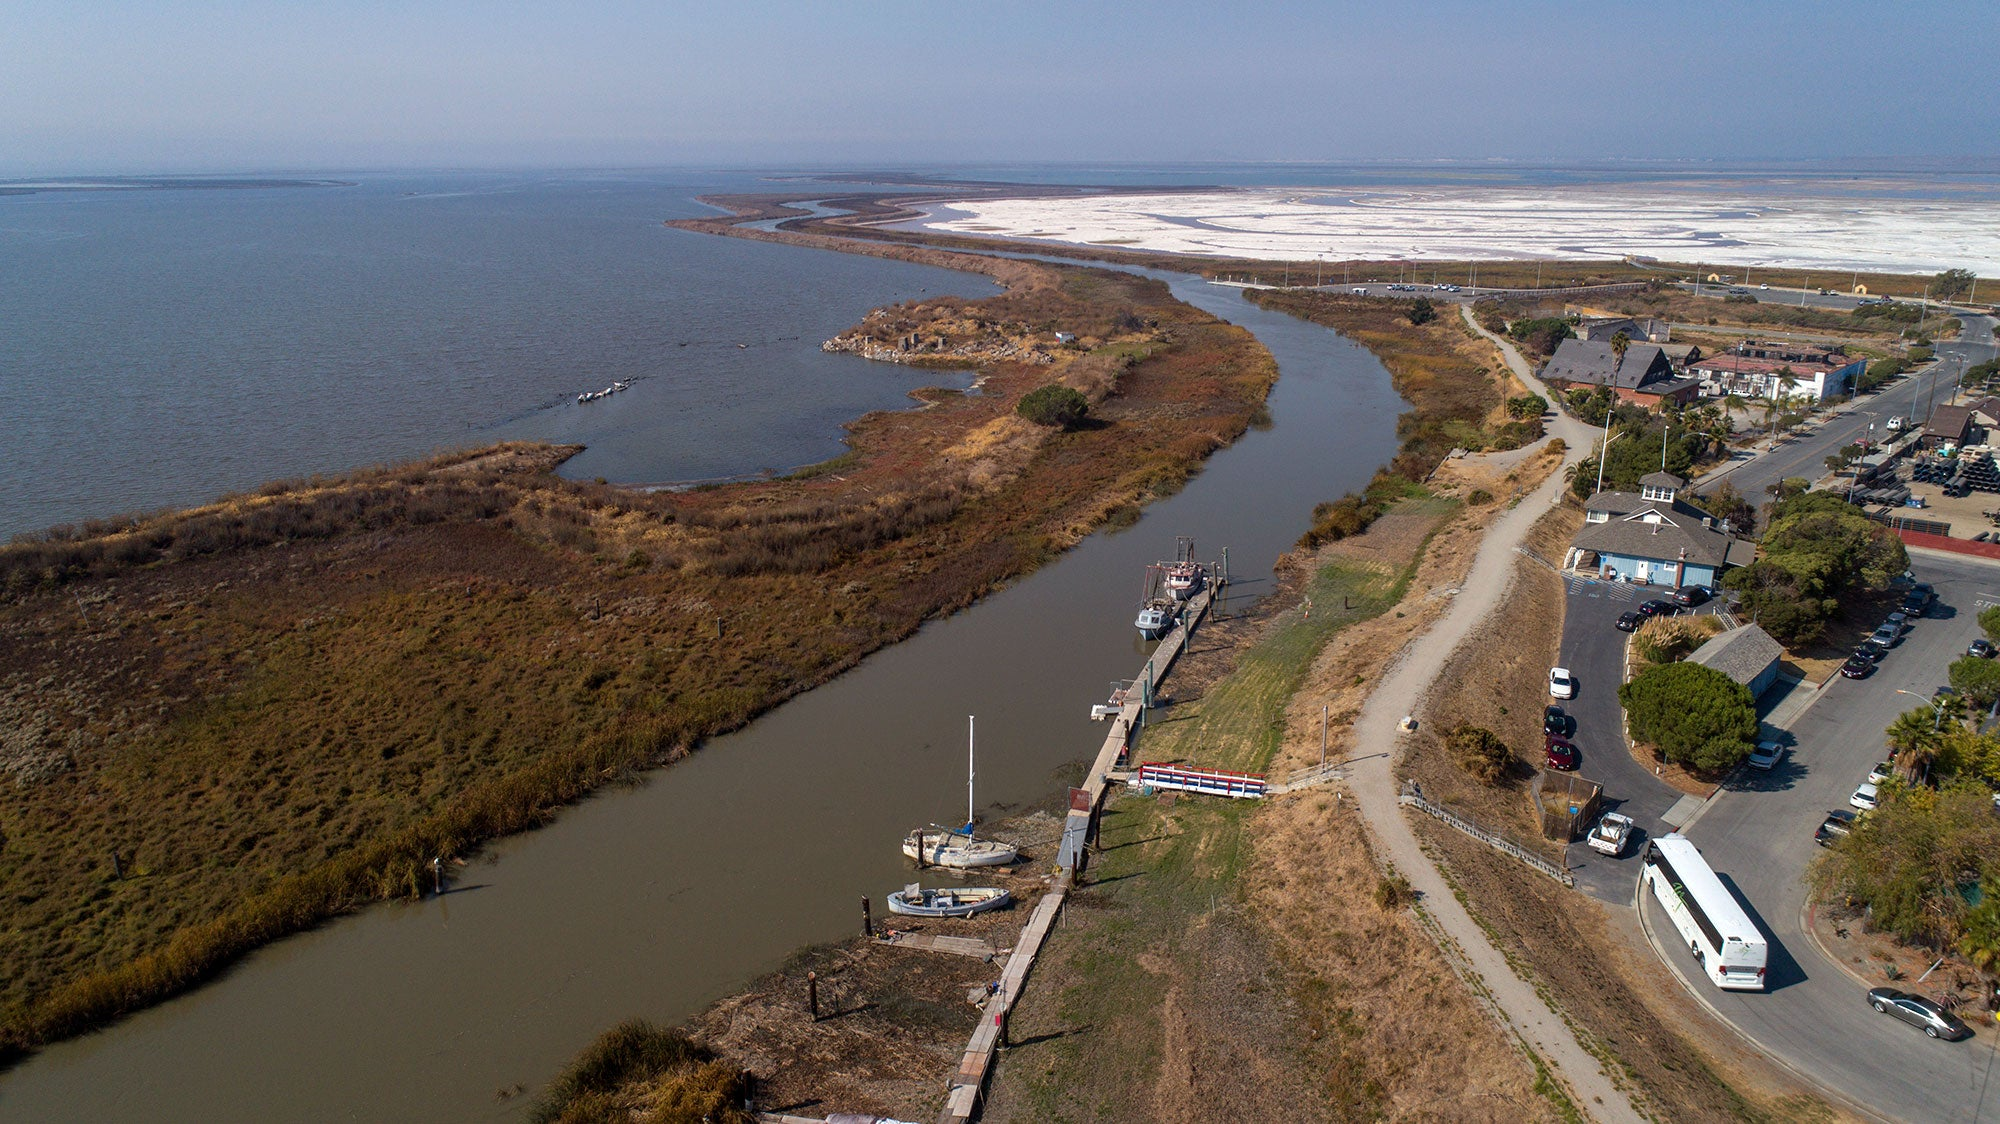 Aerial shot of South Bay Yacht Club's proximity to sloughs of the San Francisco Bay